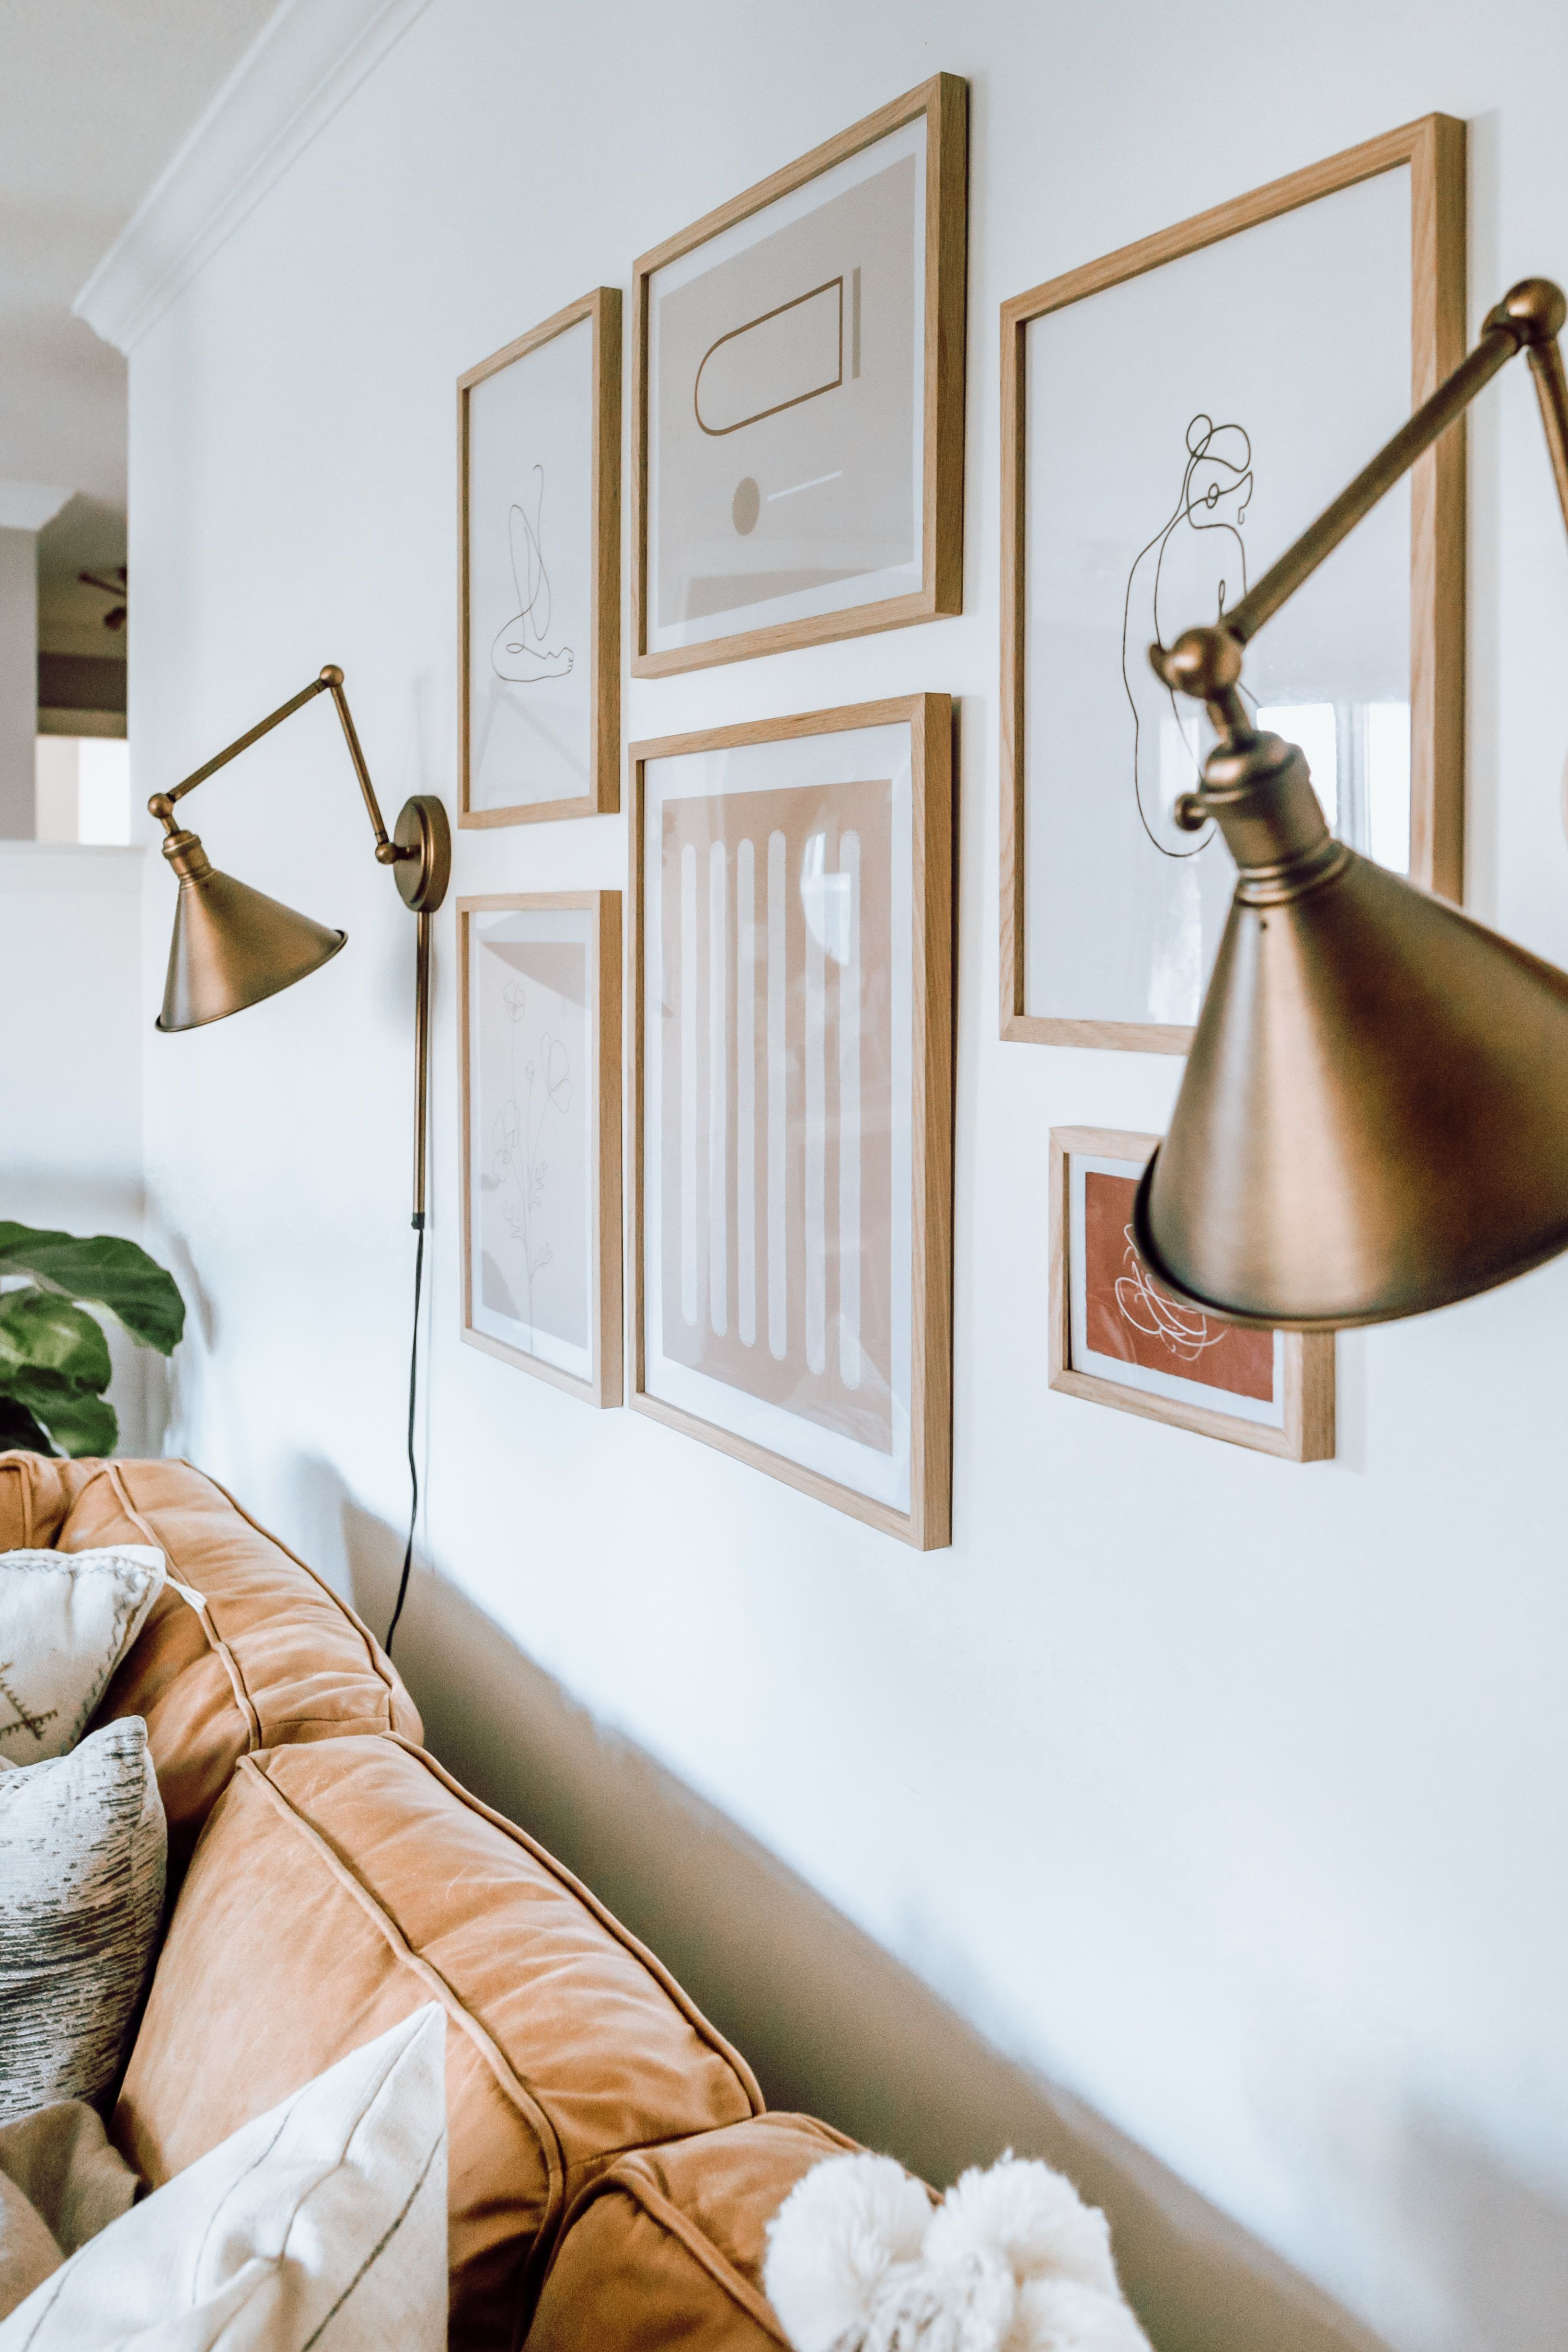 Sconce Feature Wall [ Shop Lighting in Our Home – The Blog – Older Content